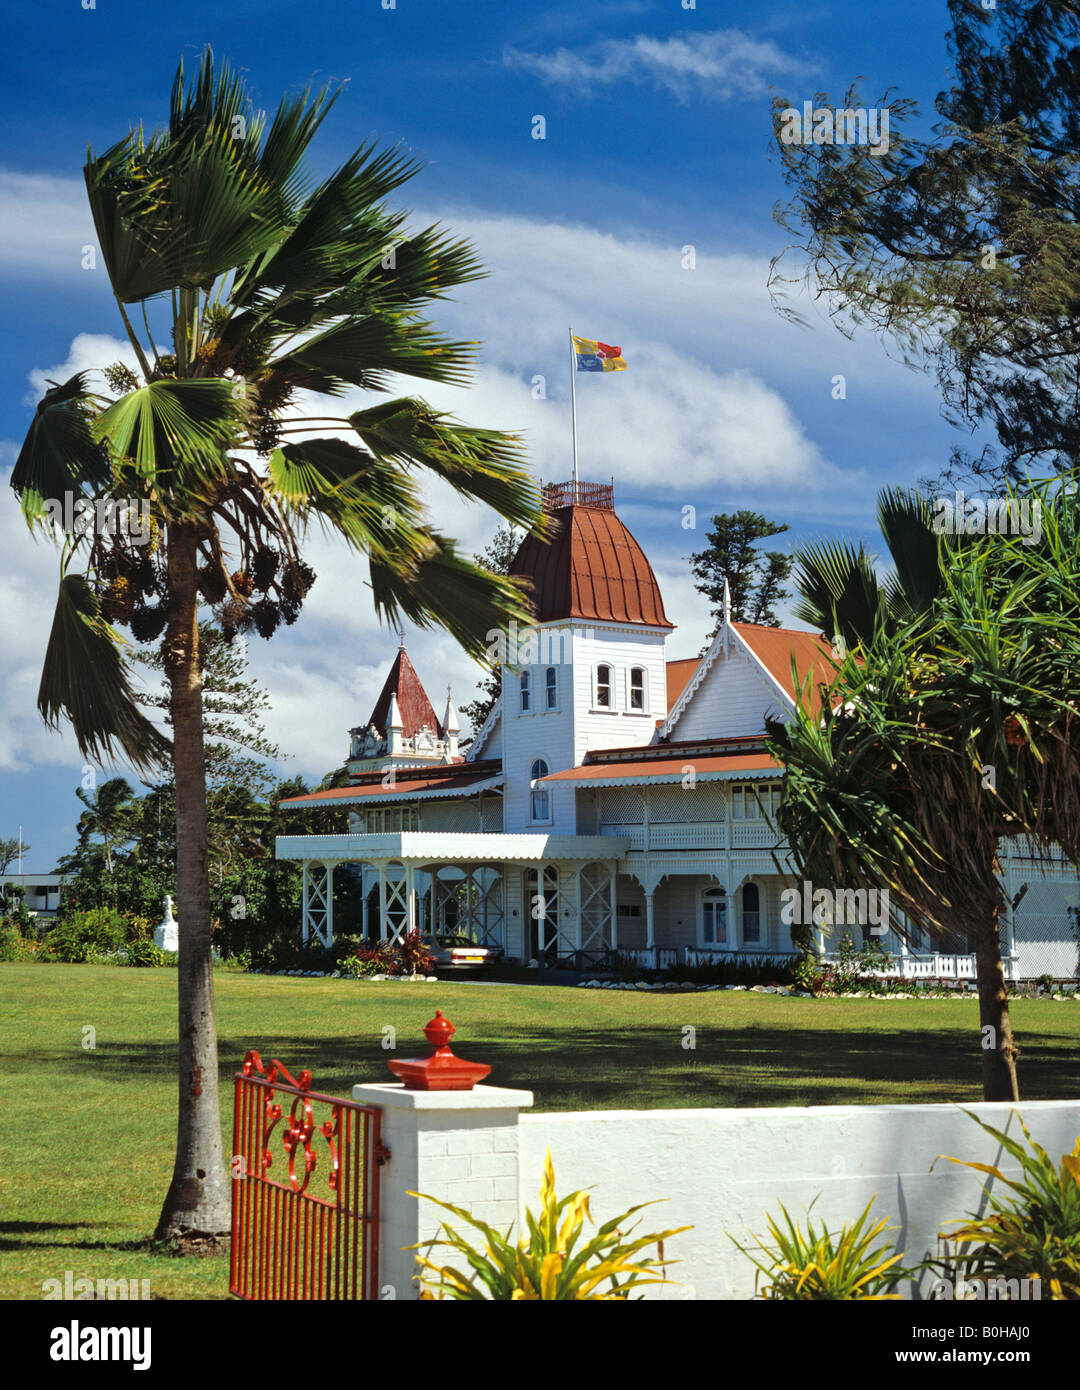 Royal Palace on Nuku Alofa, Tonga, South Pacific, Oceania - Stock Image